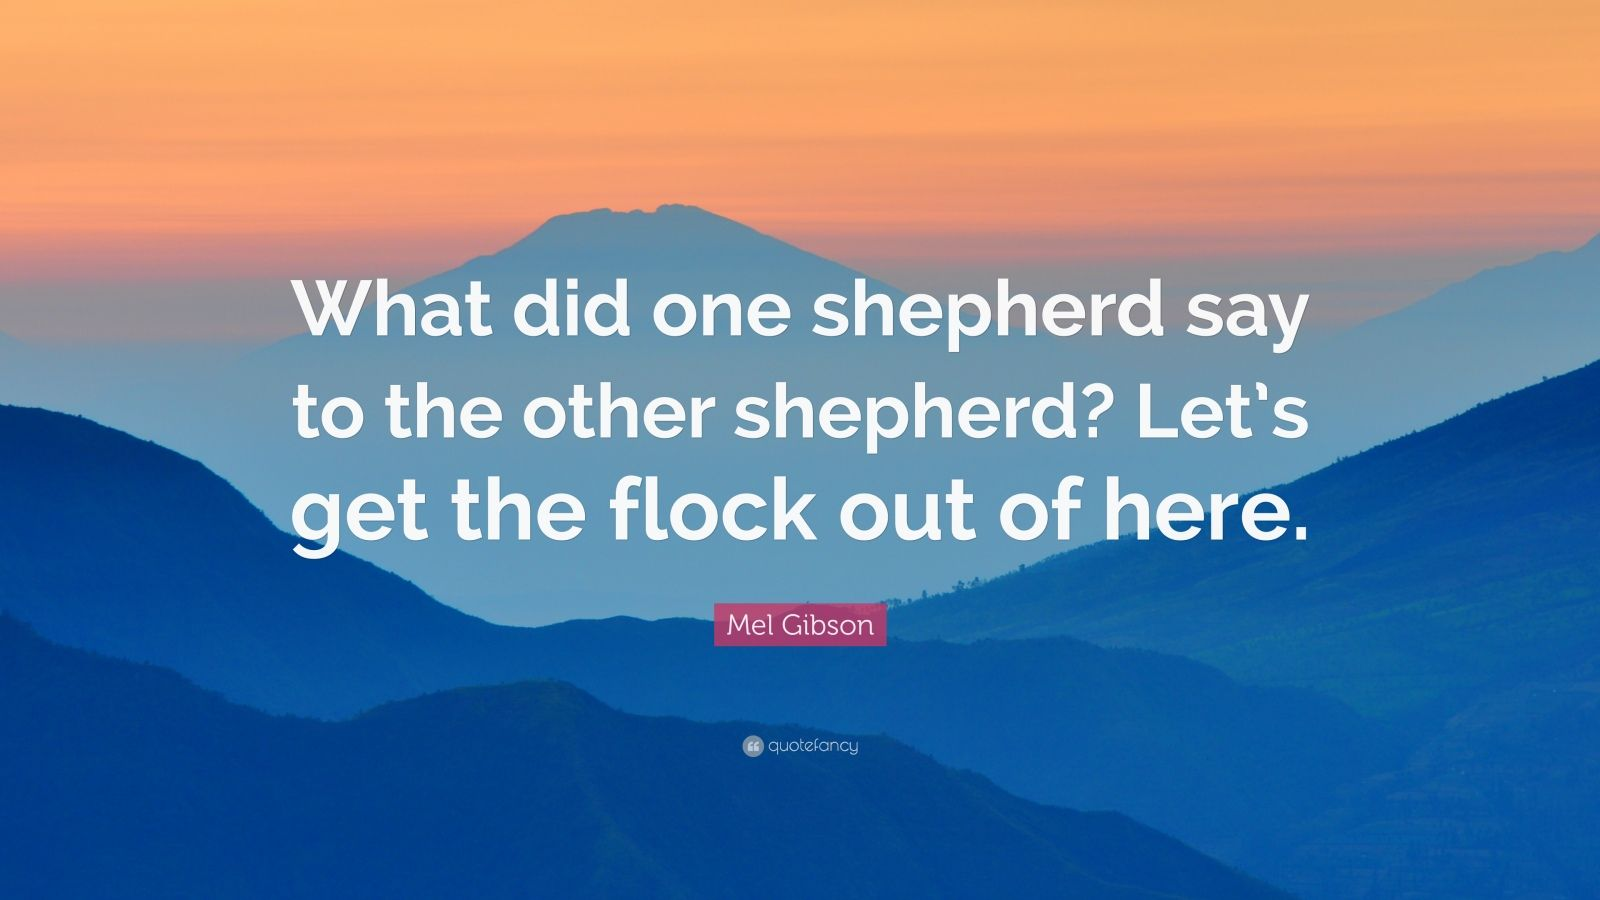 """Mel Gibson Quote: """"What did one shepherd say to the other shepherd? Let's get the flock out of here."""""""